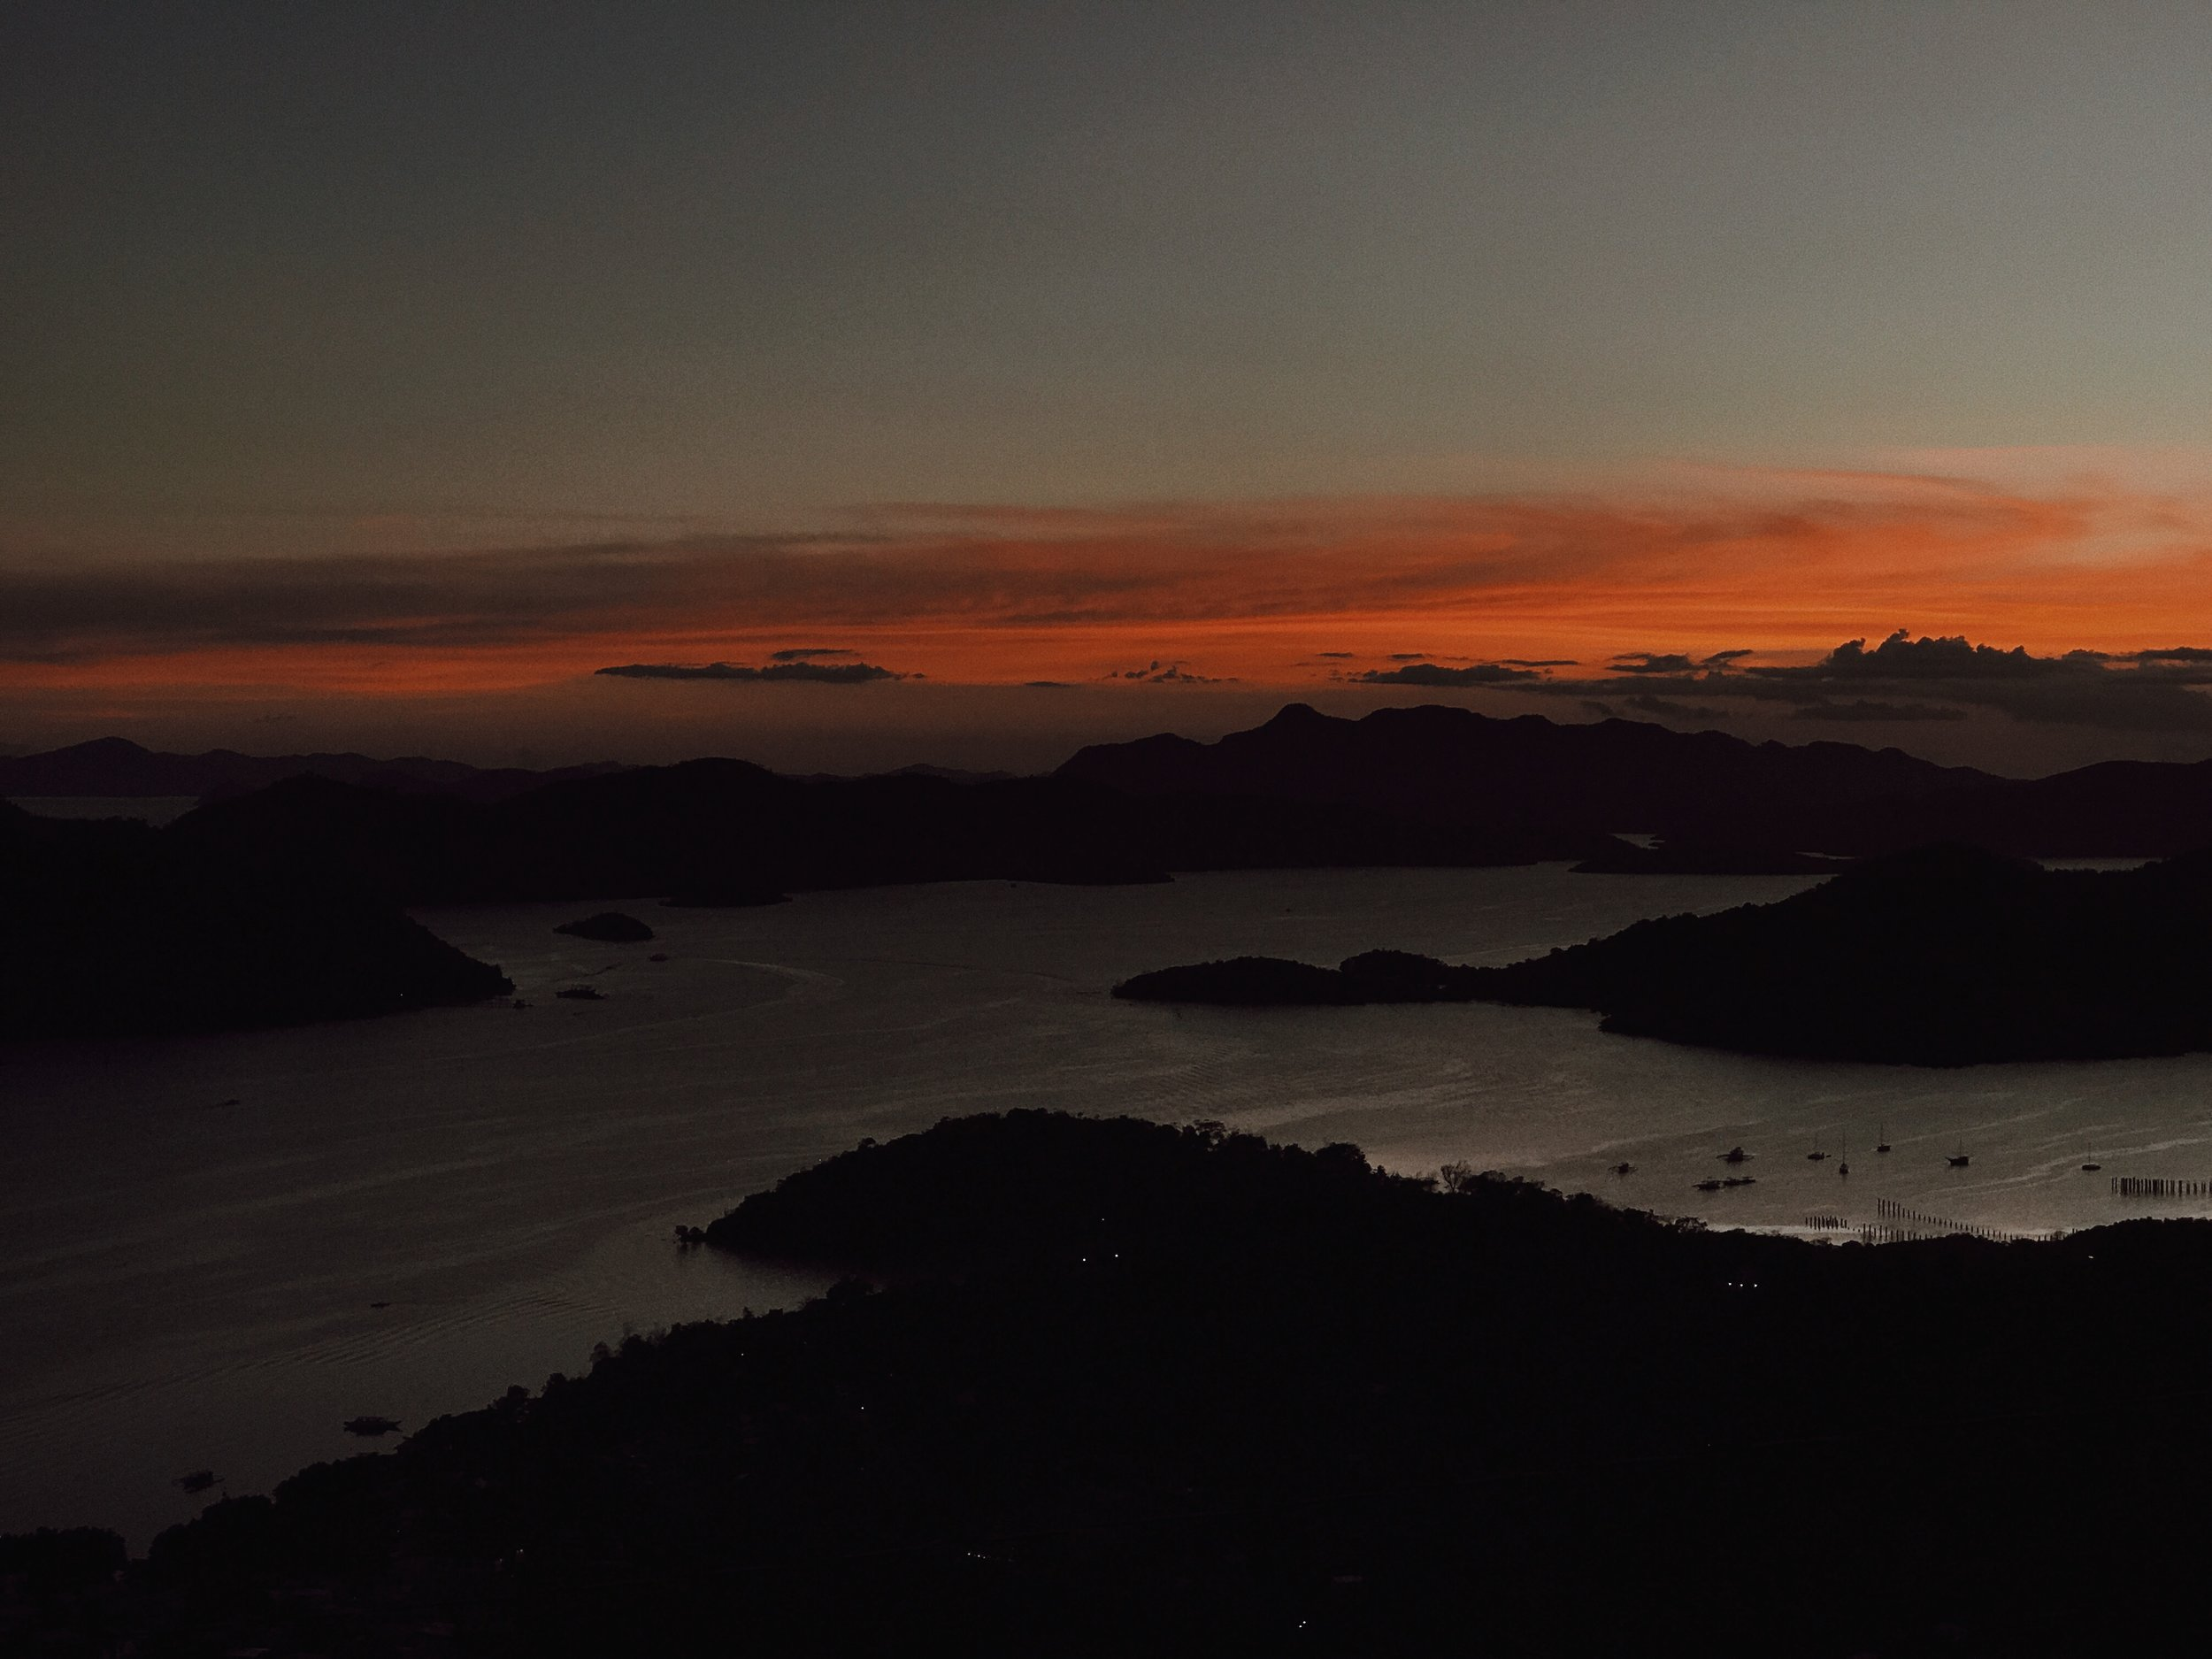 View of the sunset after climbing Mt. Tapyas in Coron, Palawan, The Philippines